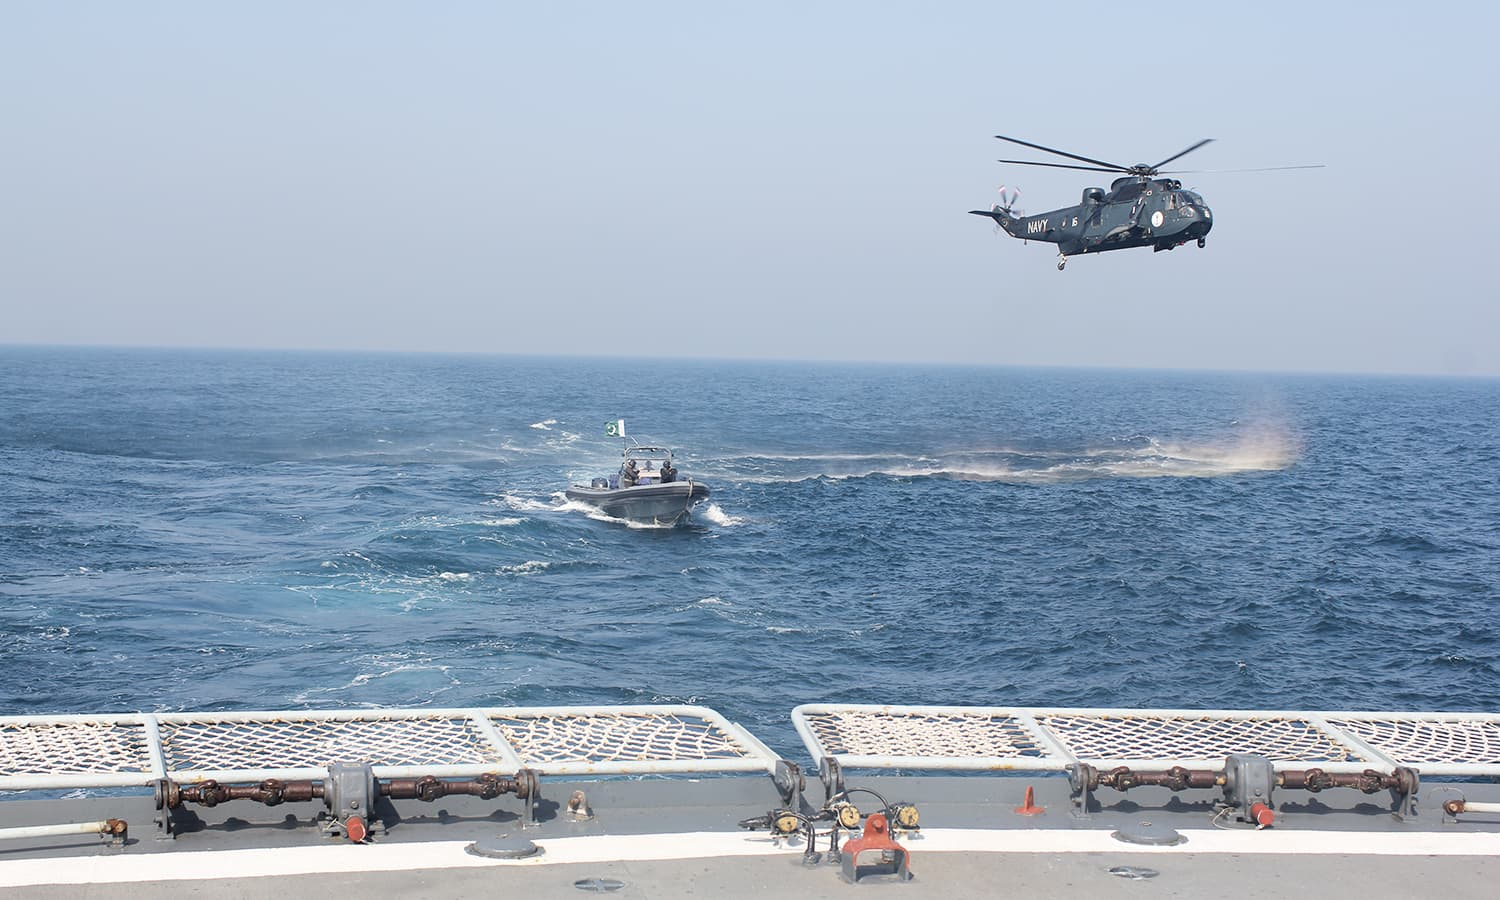 Sea King helicopter and Naval SSG boat make approach towards PNS Zulfiquar.